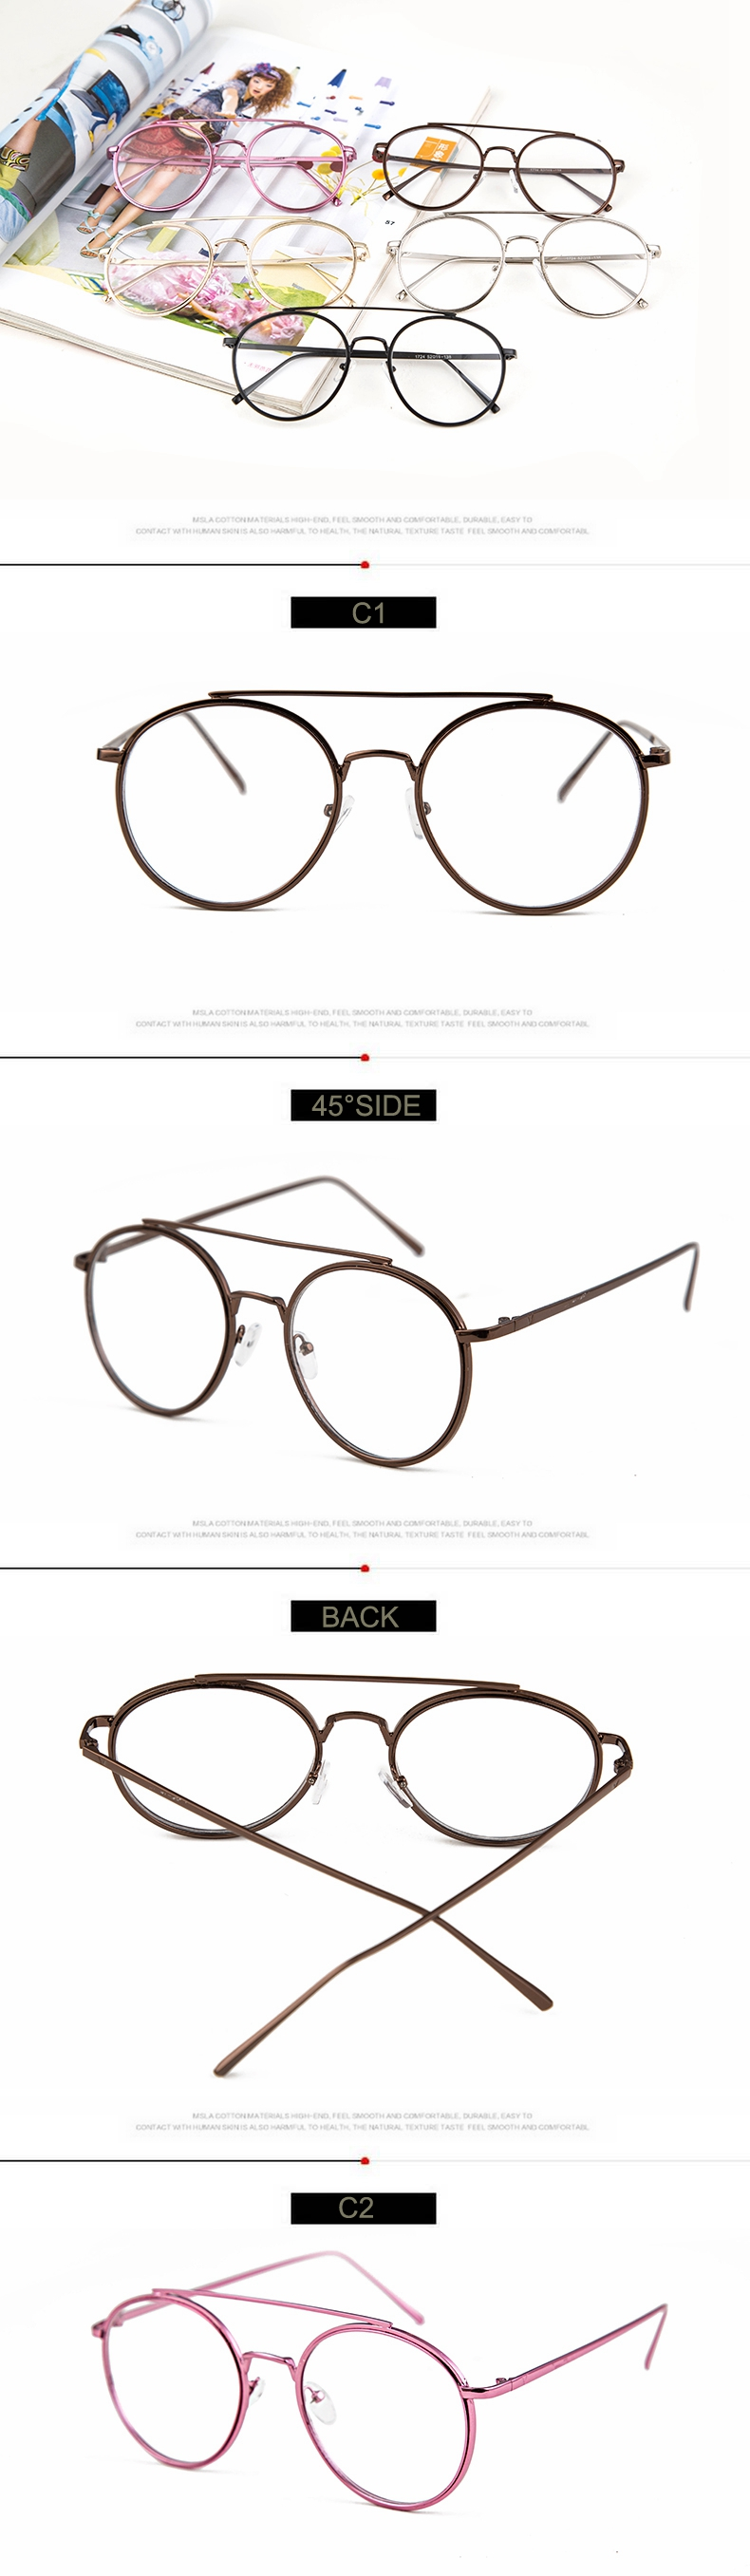 db6ccd0cdd4 HsAblaze Eyewear Retro Clear Cens Nerd Glasses Frames For Men Male Oval  Round Eyeglasses For Women Gold Metal Glasses Frame. HS   01   02